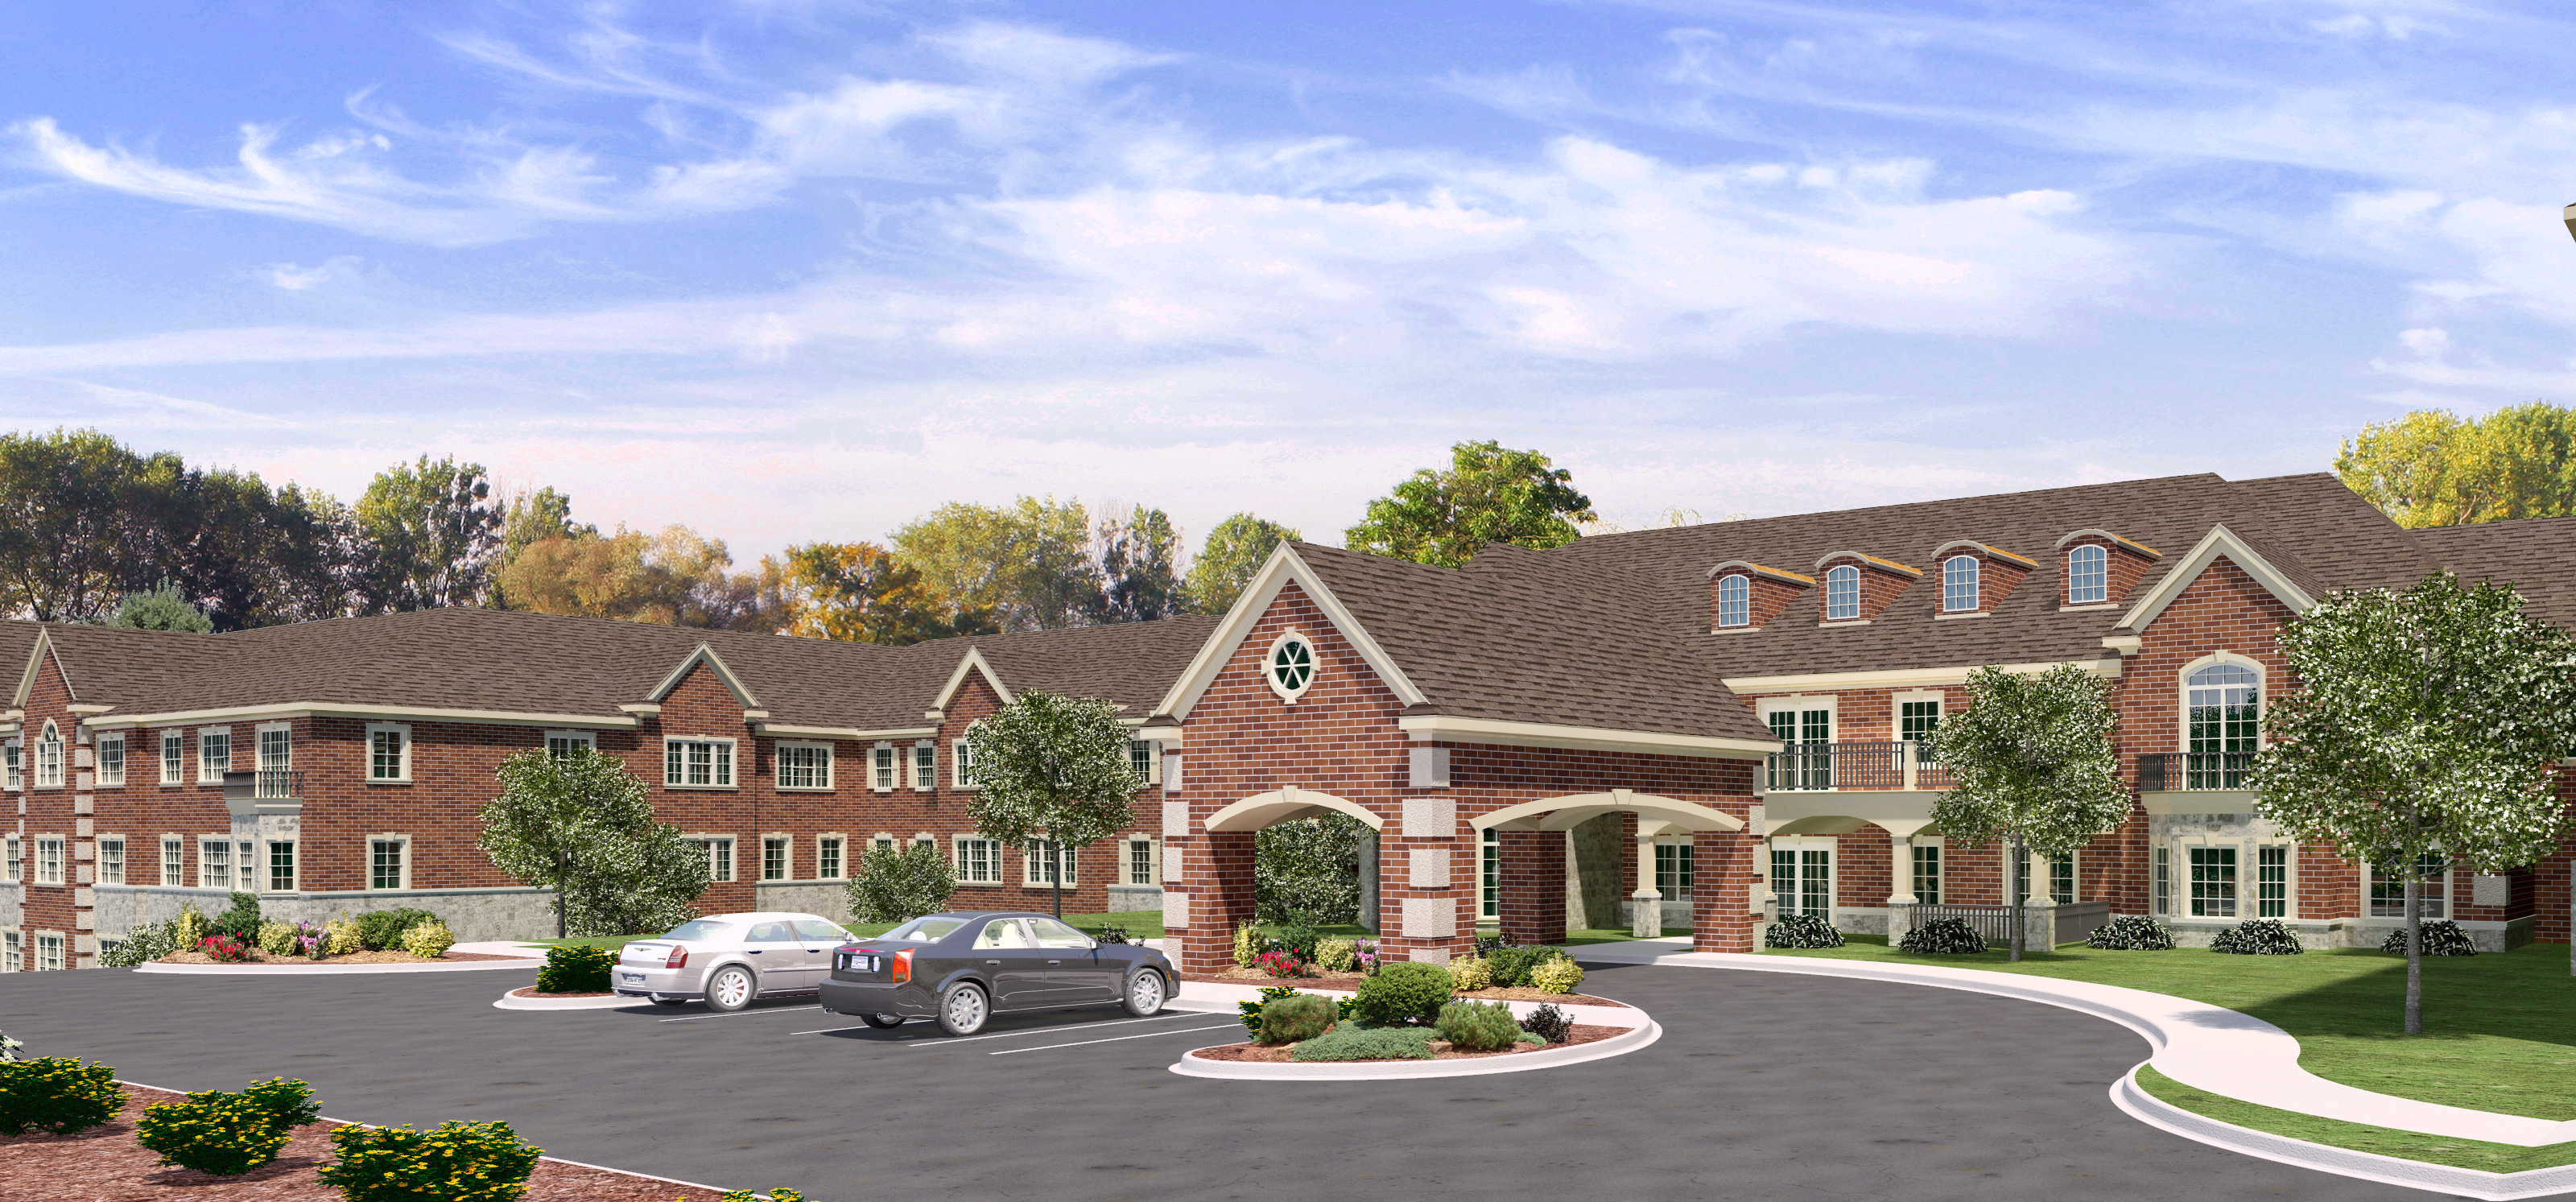 I Home Front Elevation : Cedarbrook senior living comes to bloomfield hills brings